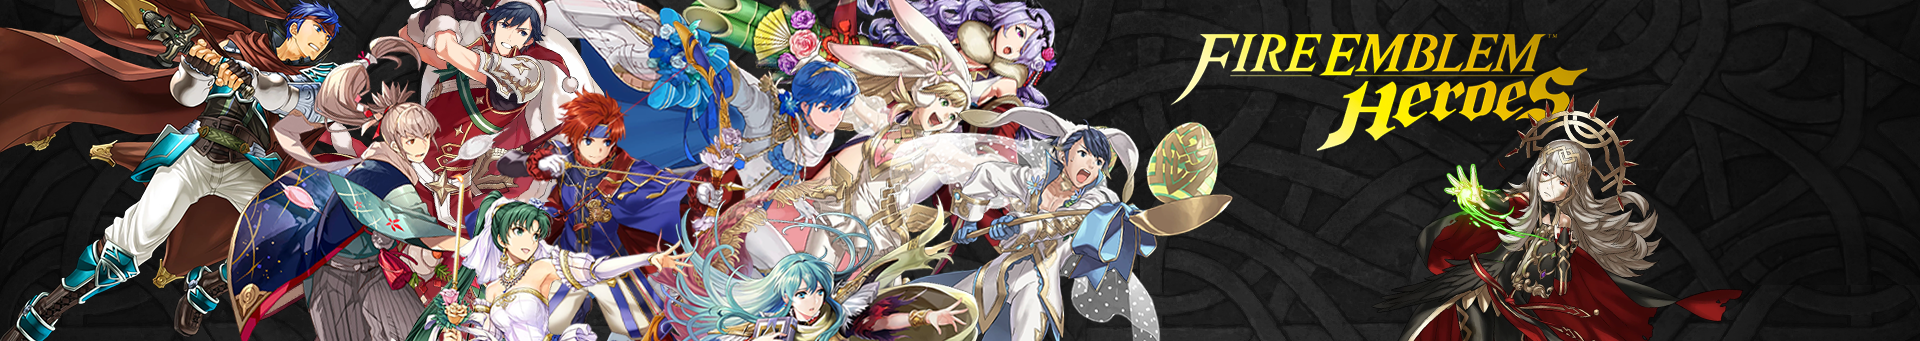 R Fireemblemheroes Banner Contest Entries June 2018 Feh (fire emblem heroes) is very different when compared with past games in the fire emblem series. yaycupcake com